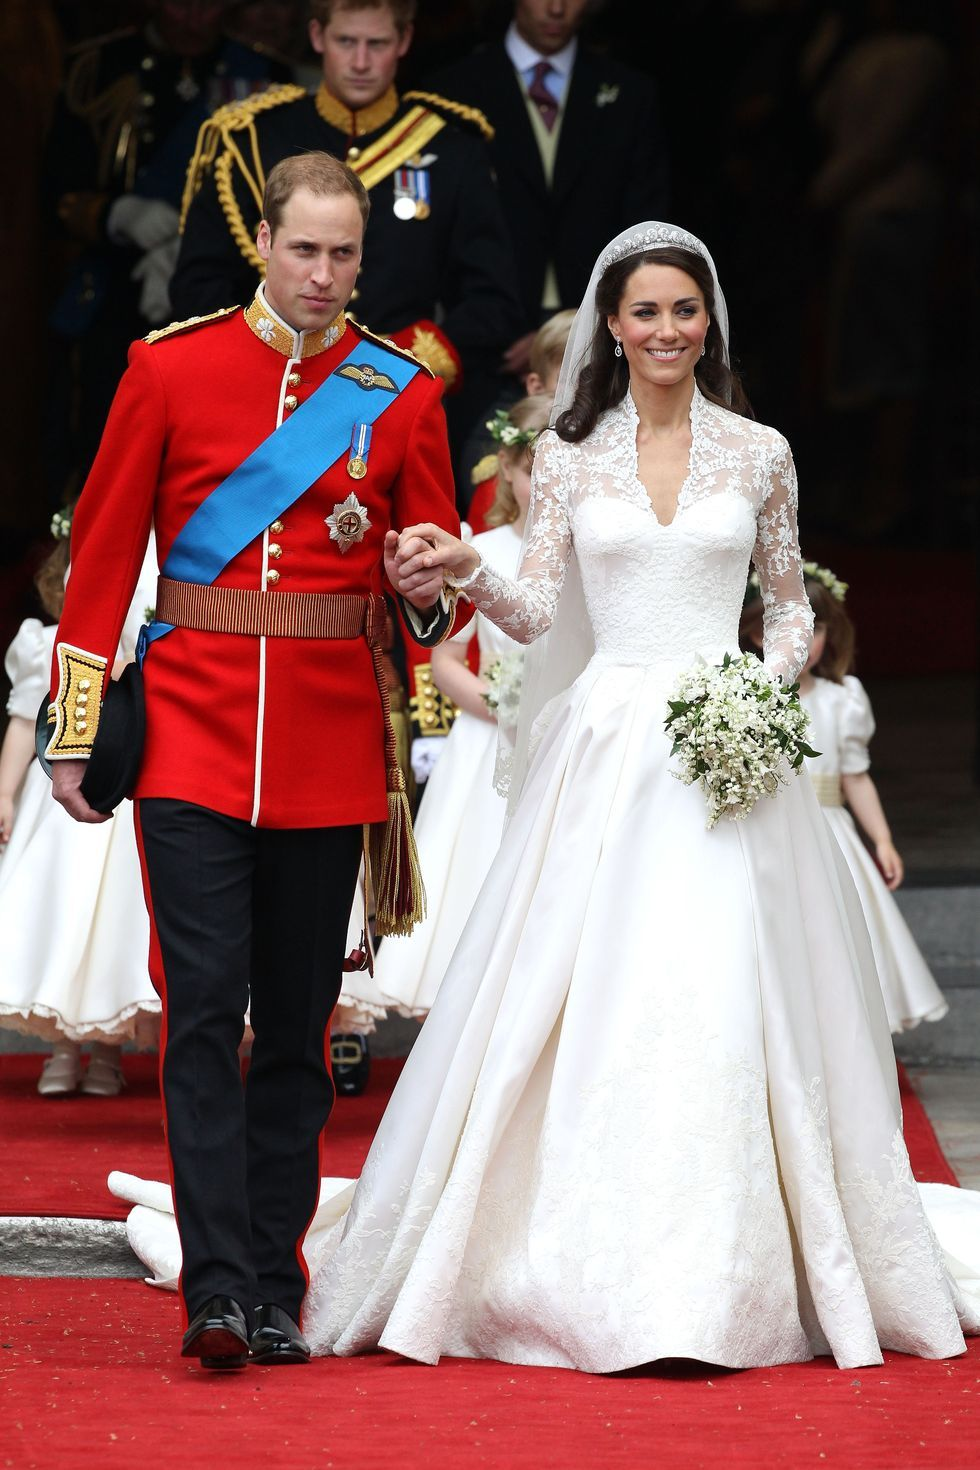 Kate Middleton Prince William Wedding Photos - Royal Wedding 2011 ...